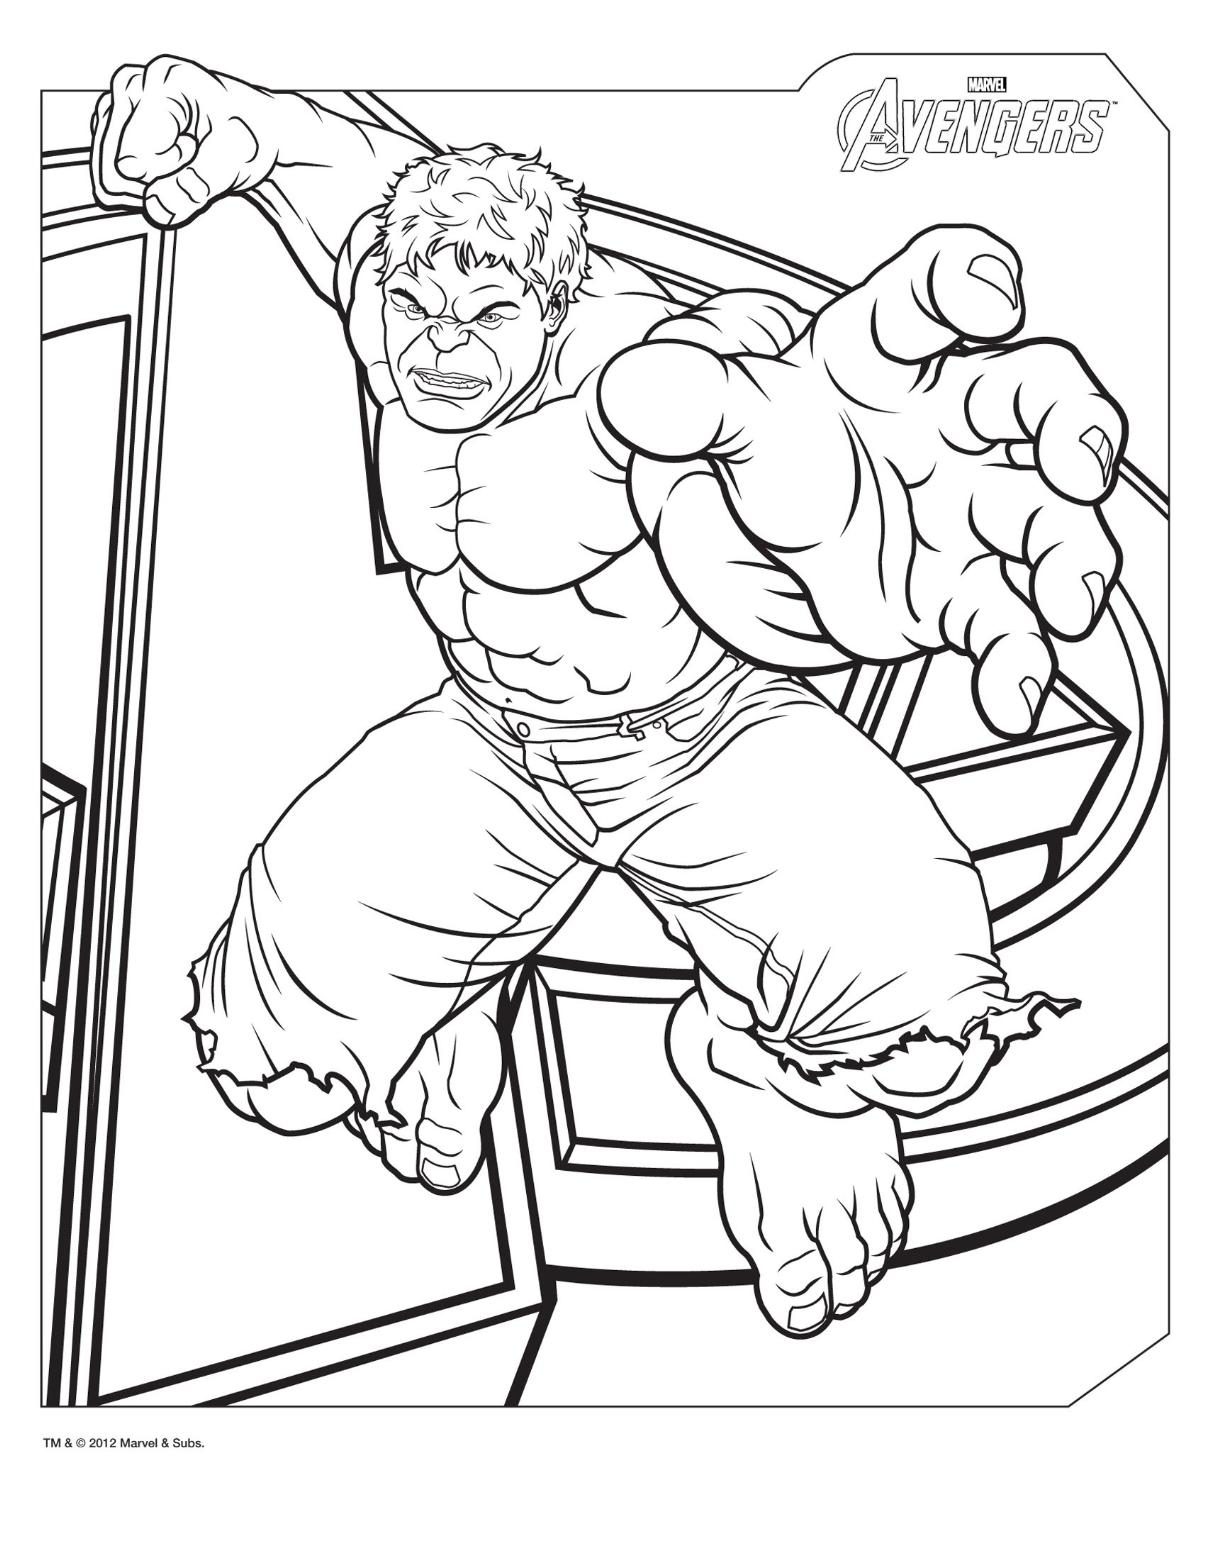 Comic book coloring pages to download